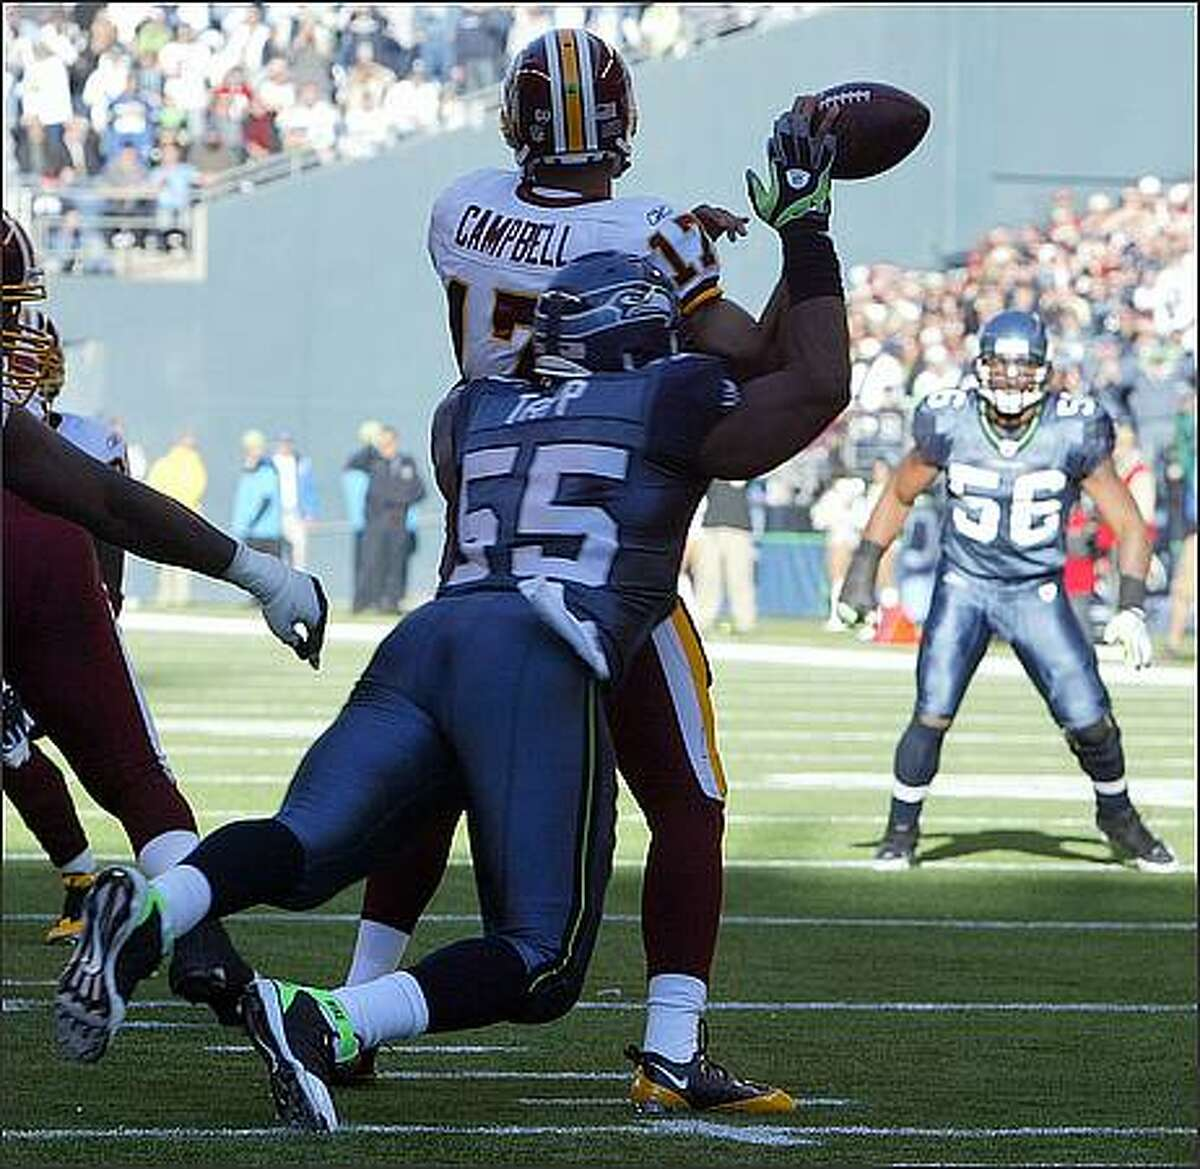 Seattle Seahawks defensive end Darryl Tapp drops Washington Redskins quarterback Jason Campbell for a five yard loss and forces a fumble during the first quarter at Qwest Field.